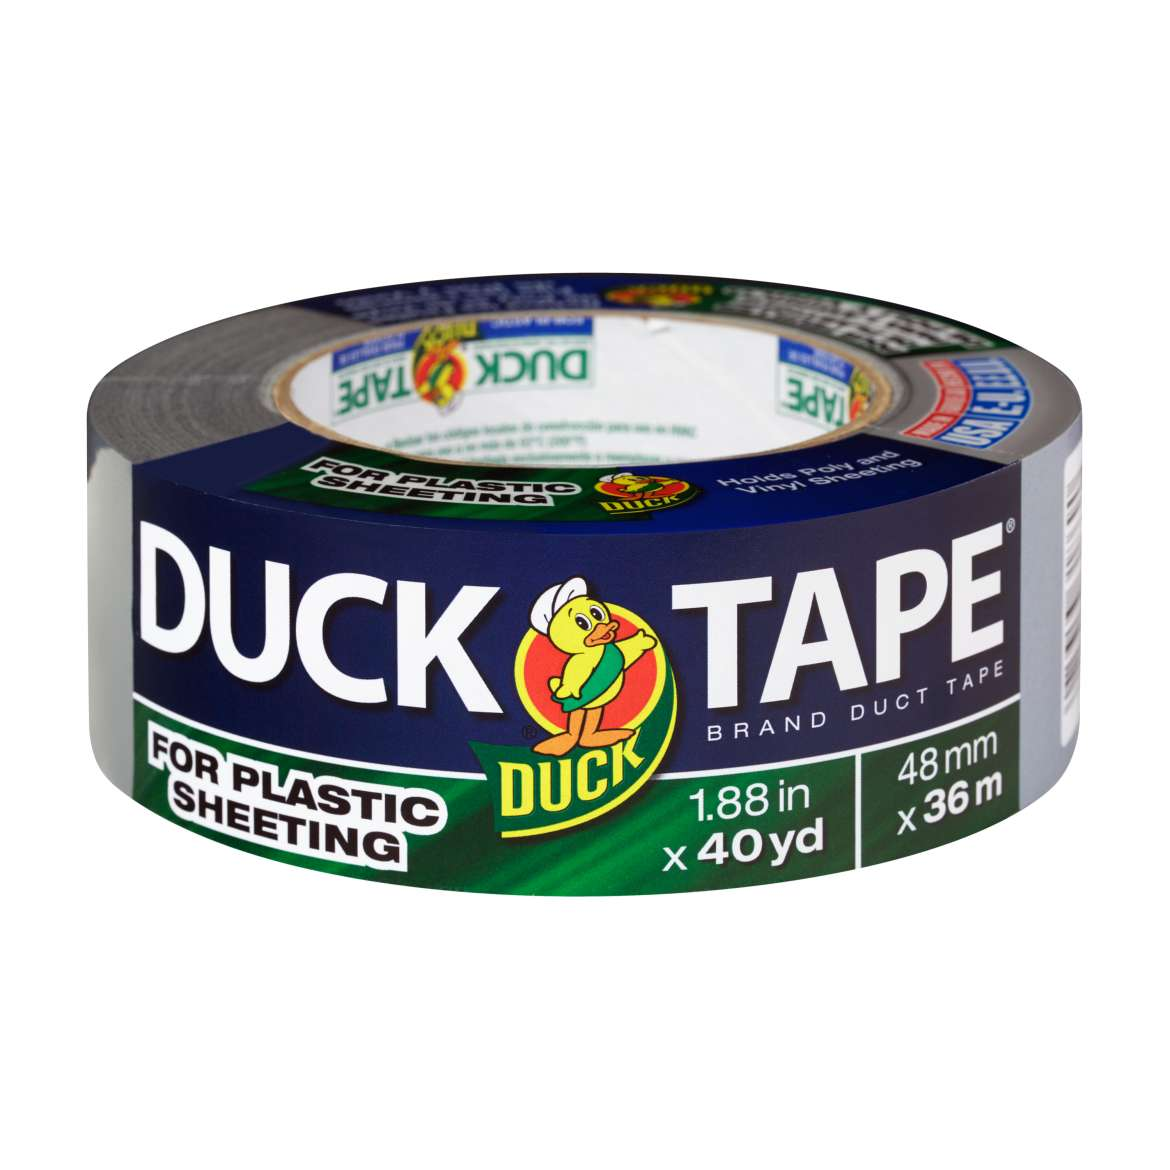 Duck® Brand Duct Tape For Plastic Sheeting - Silver, 1.88 in. x 40 yd. Image